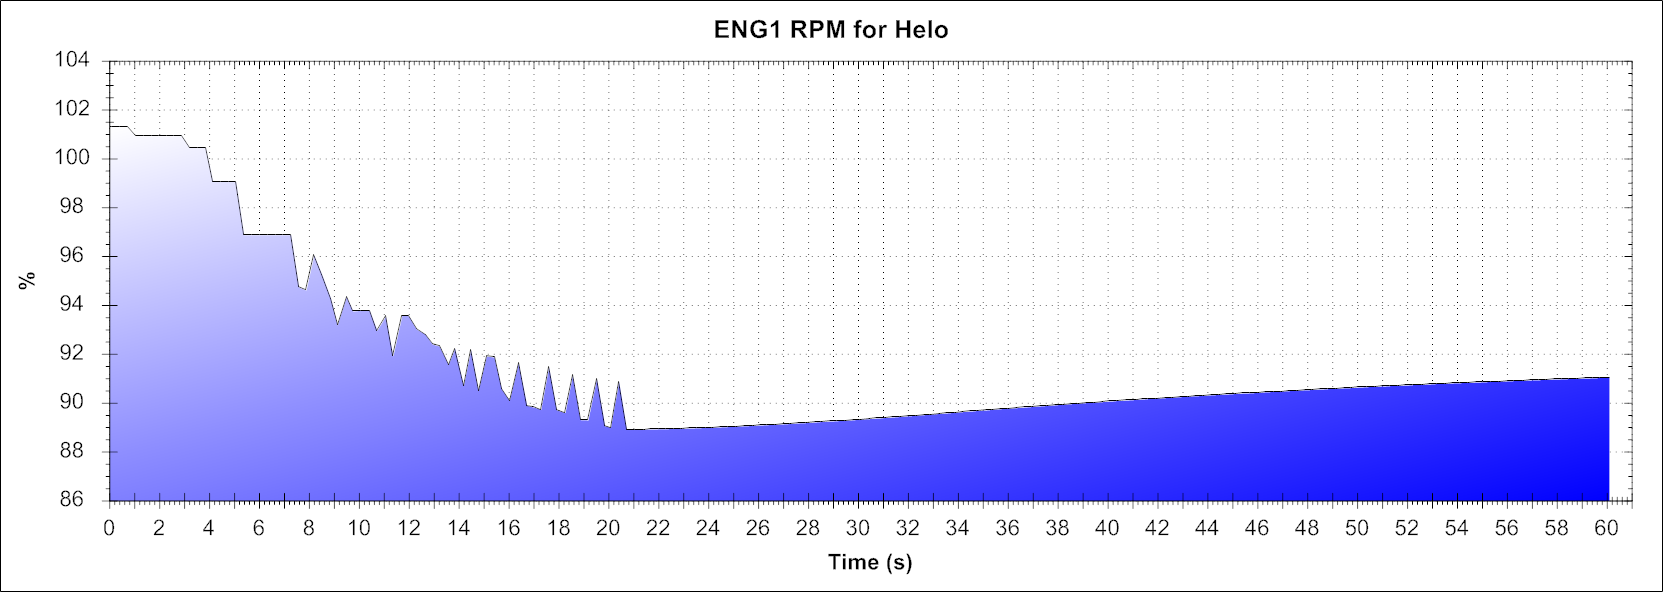 ENG1 RPM for Helo